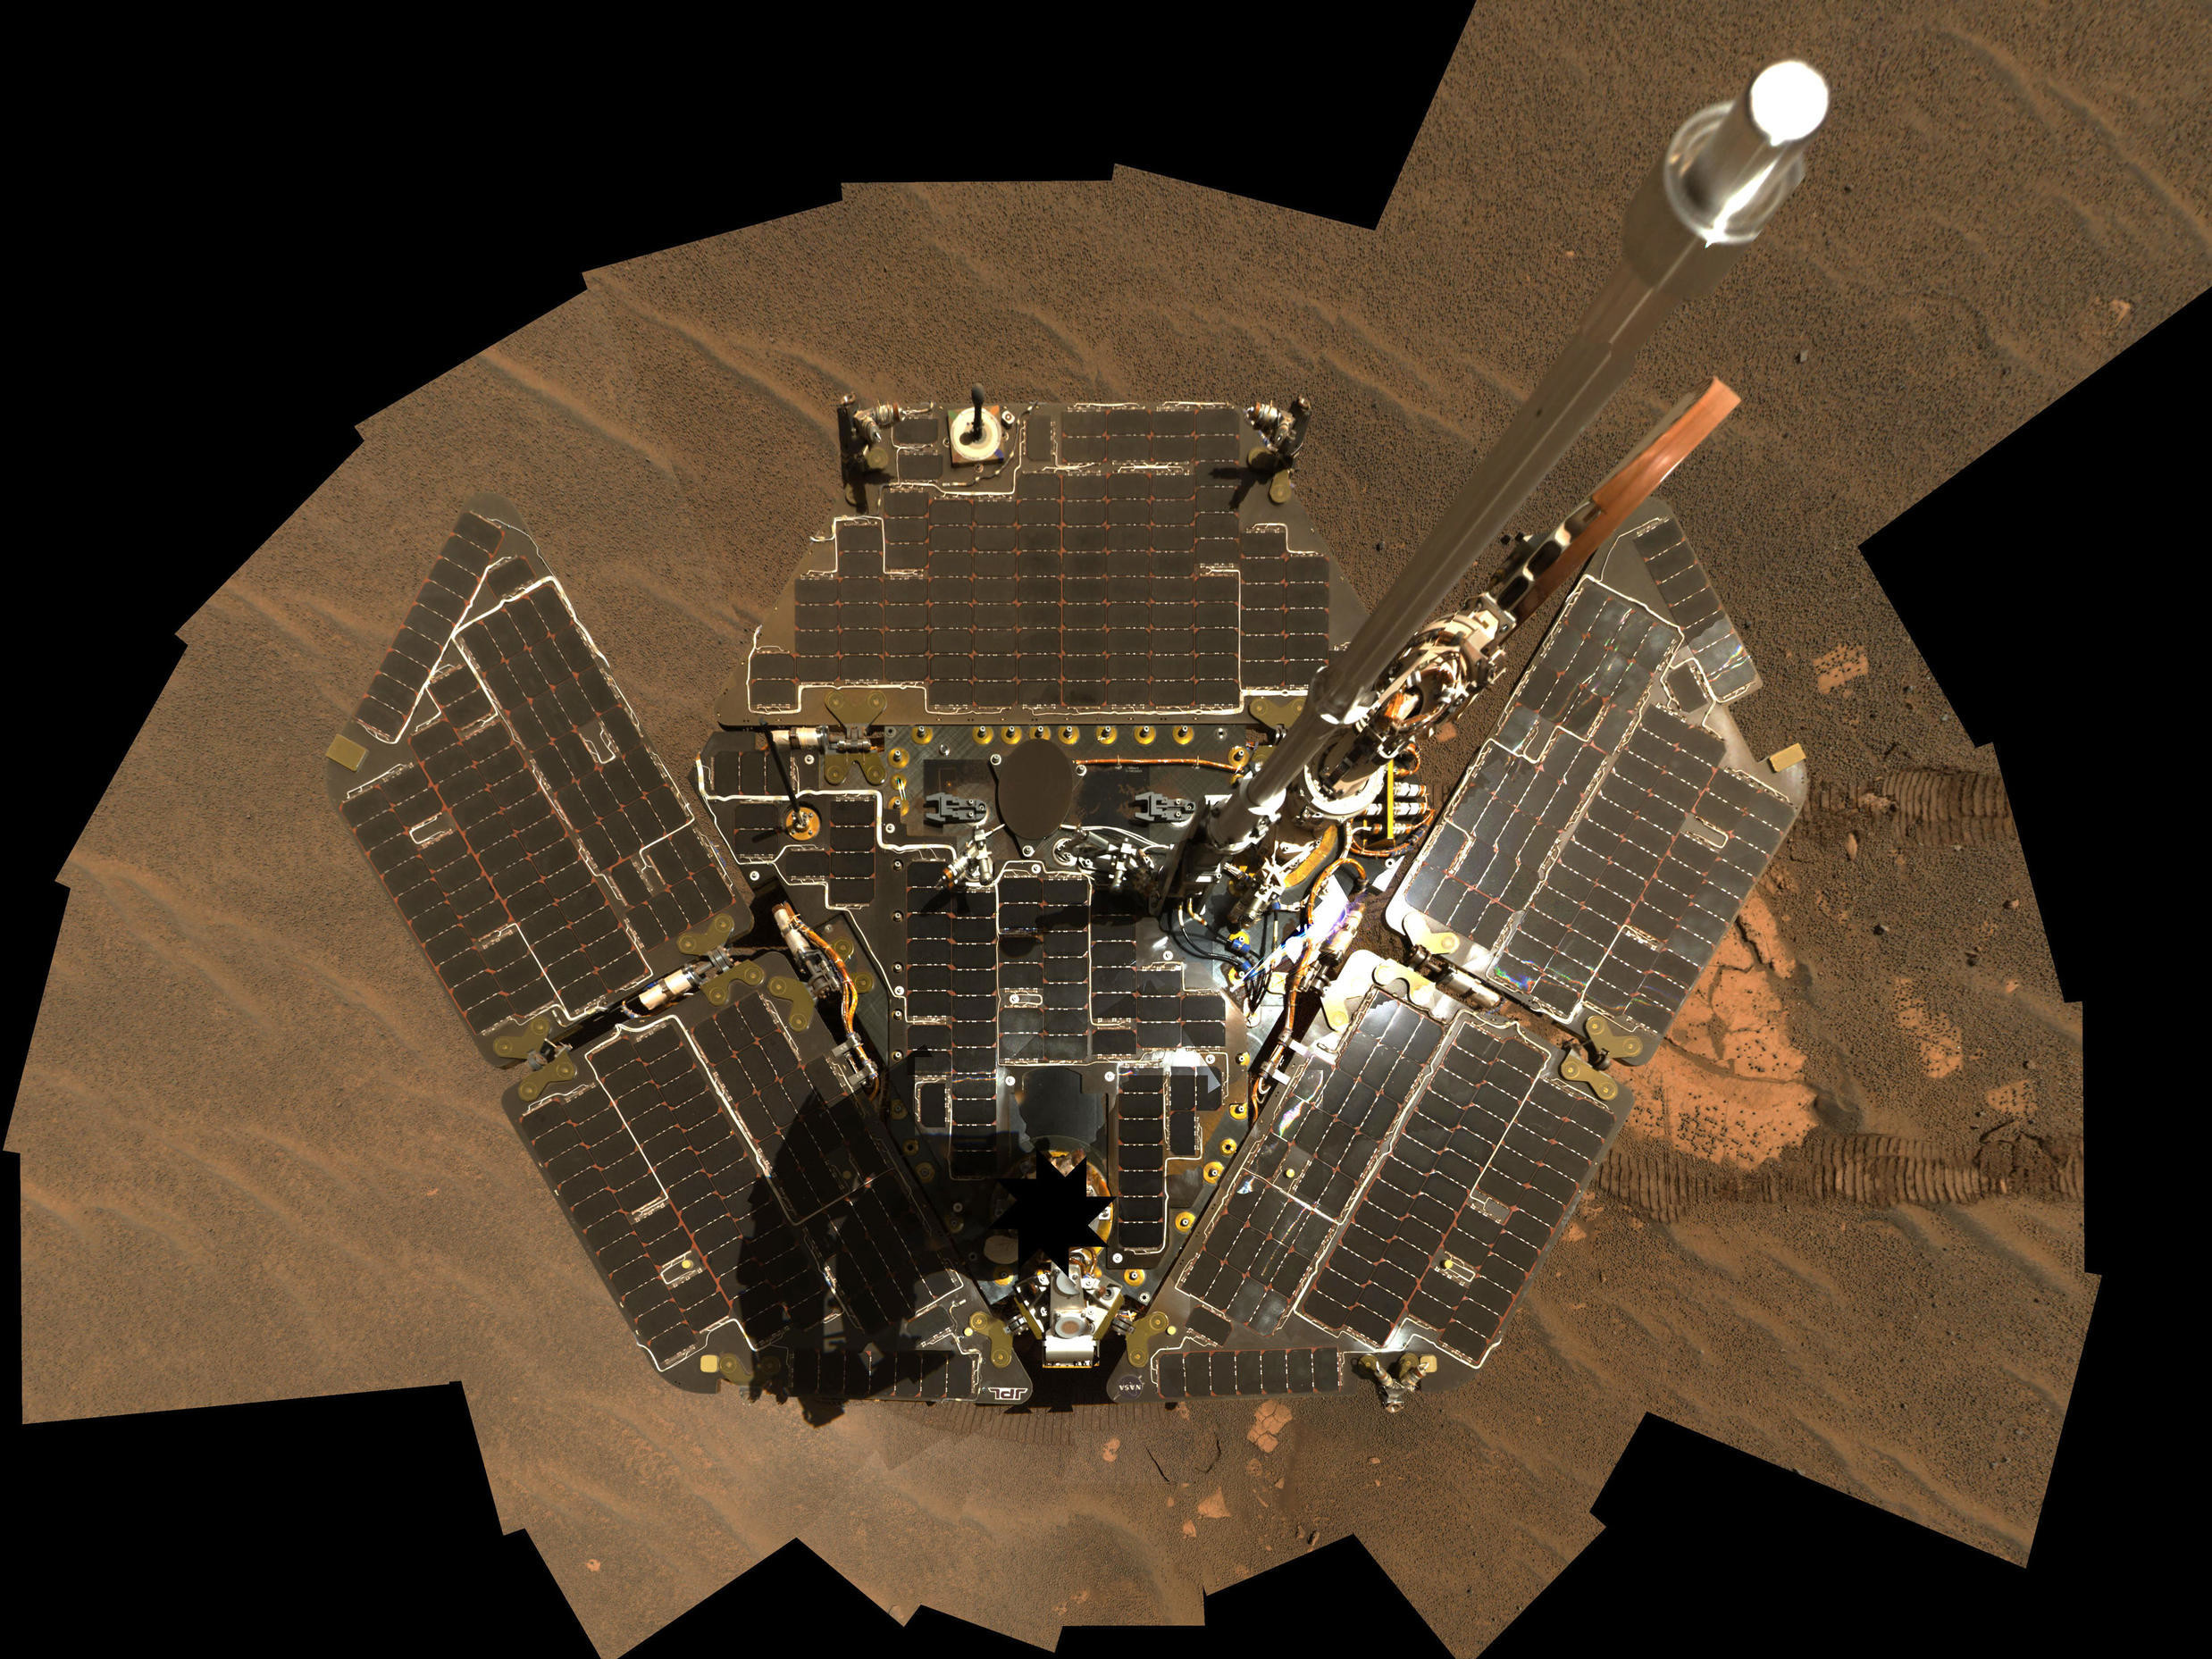 Opportunity Self-Portrait: Opportunity used its panoramic camera to take the images combined into this mosaic view of the rover.